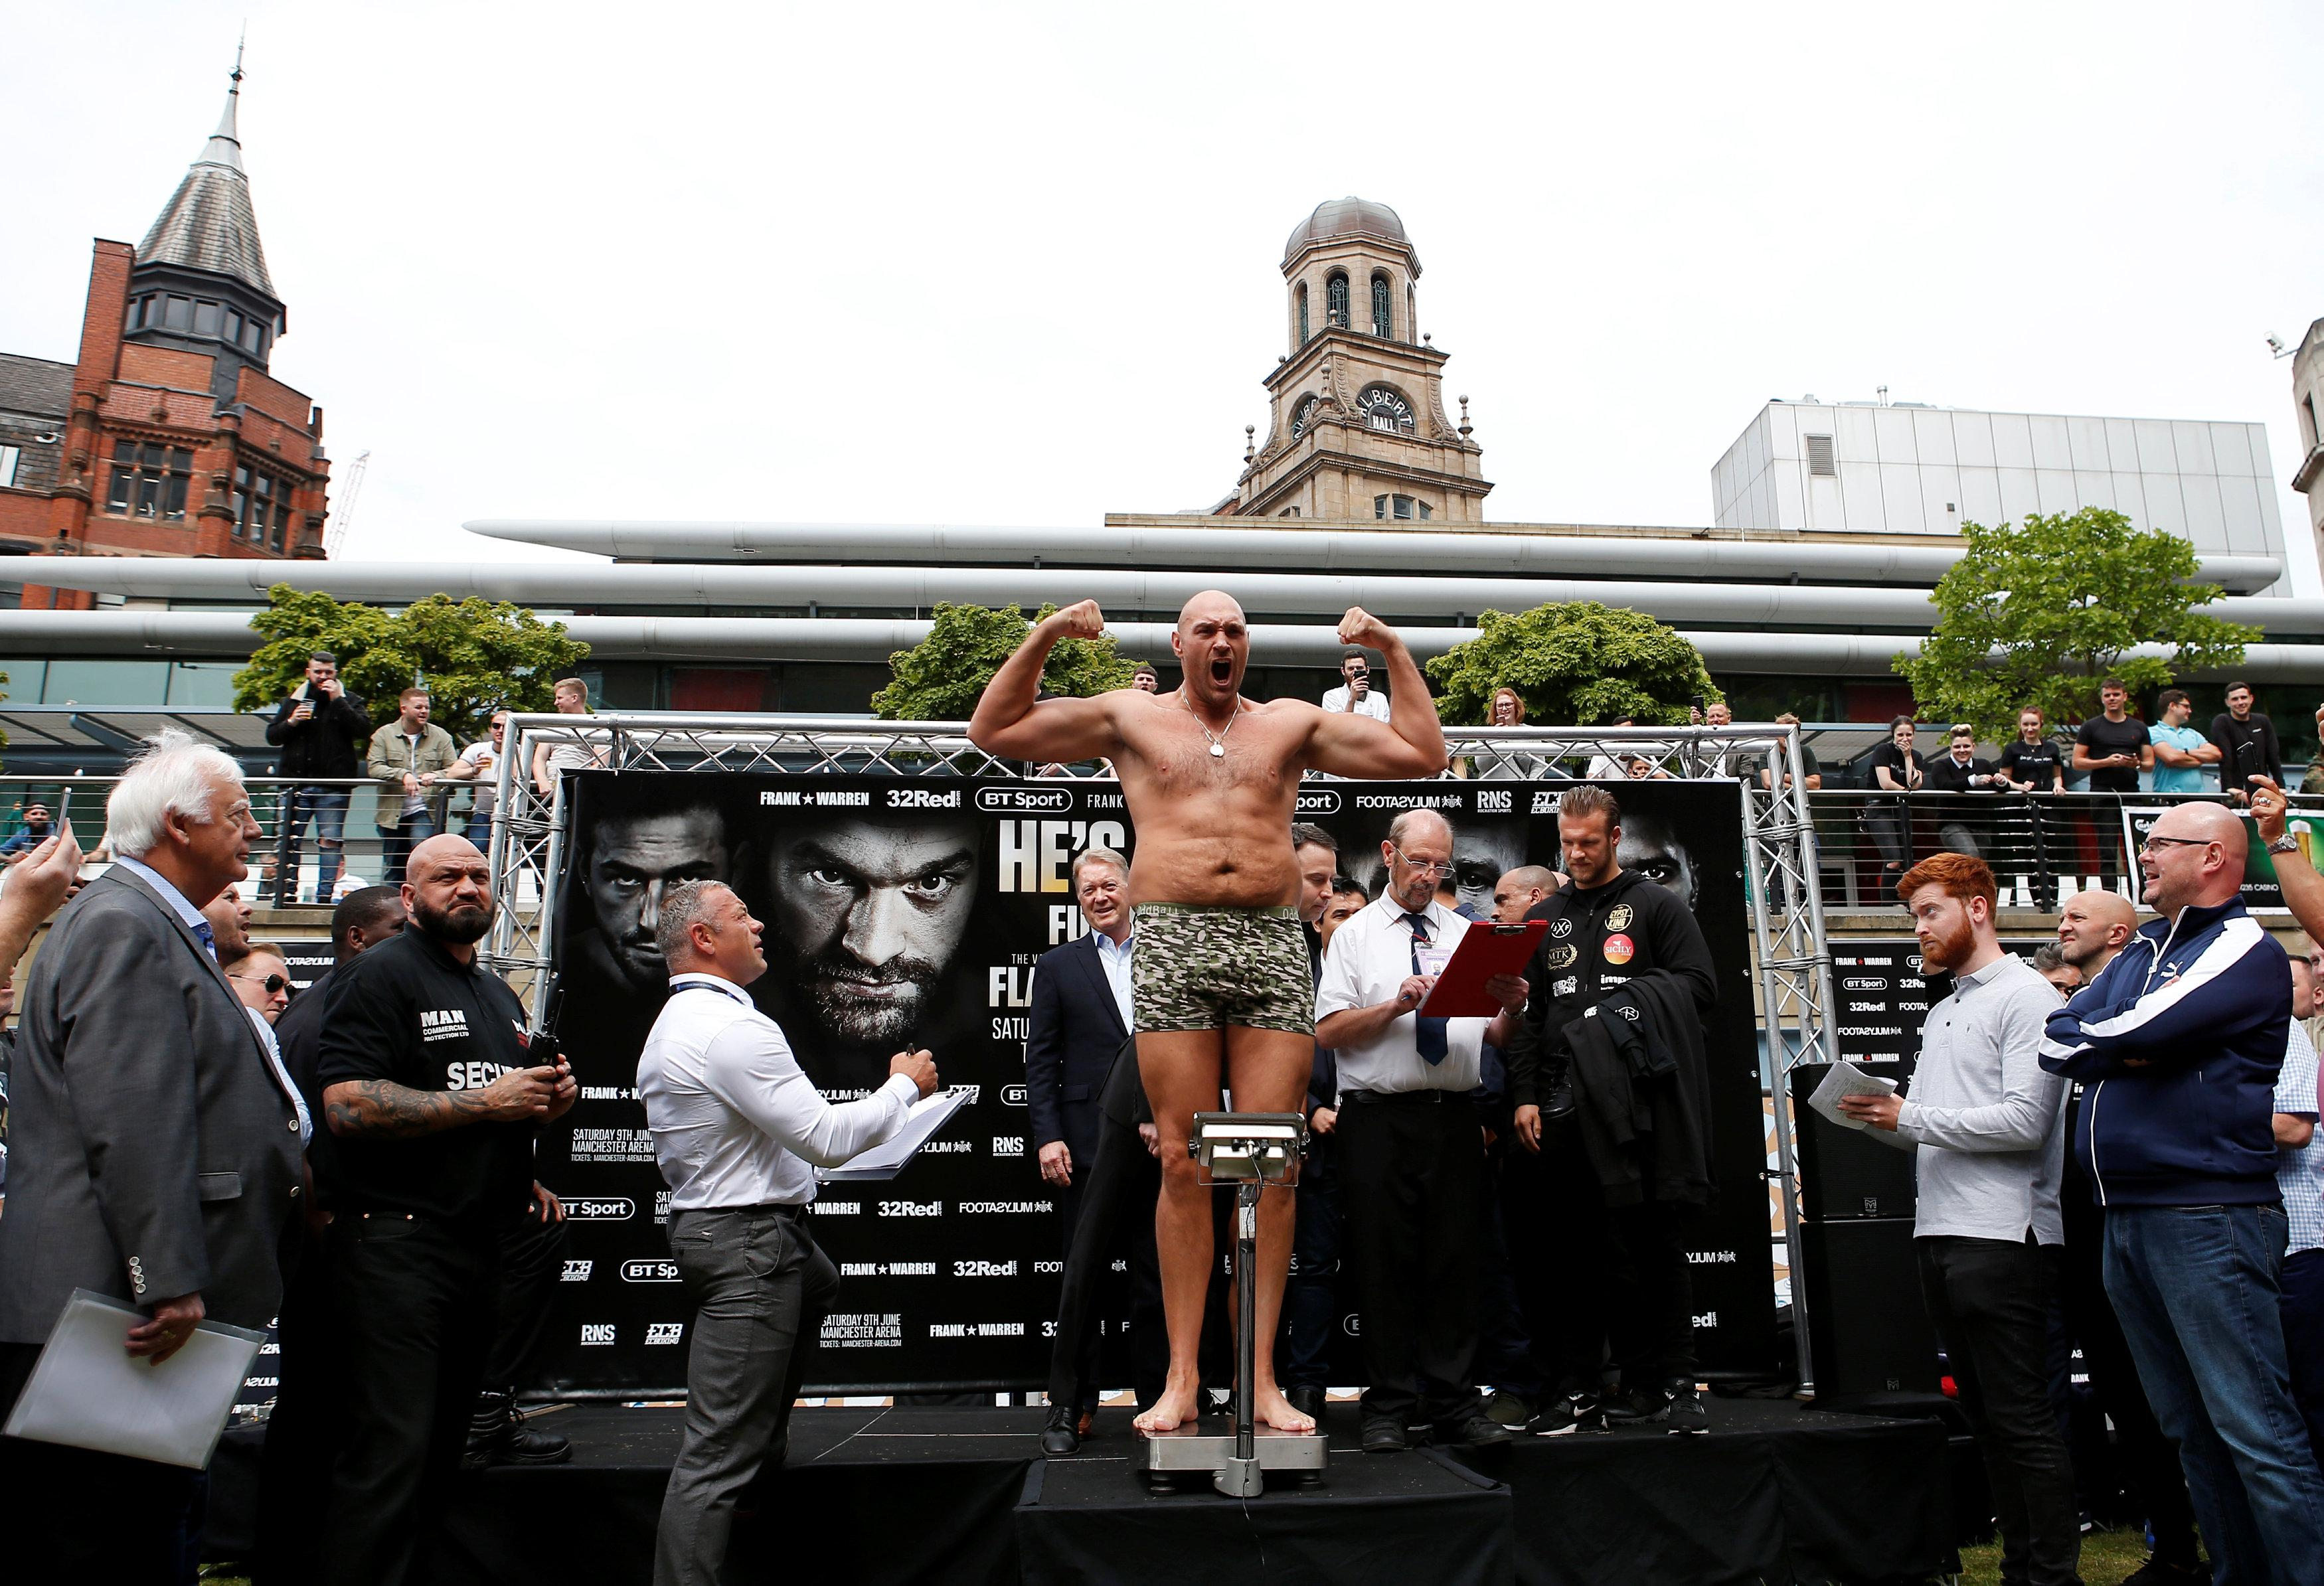 Tyson Fury had the crowds out as he showed off his incredible 8st 2lbs weight loss